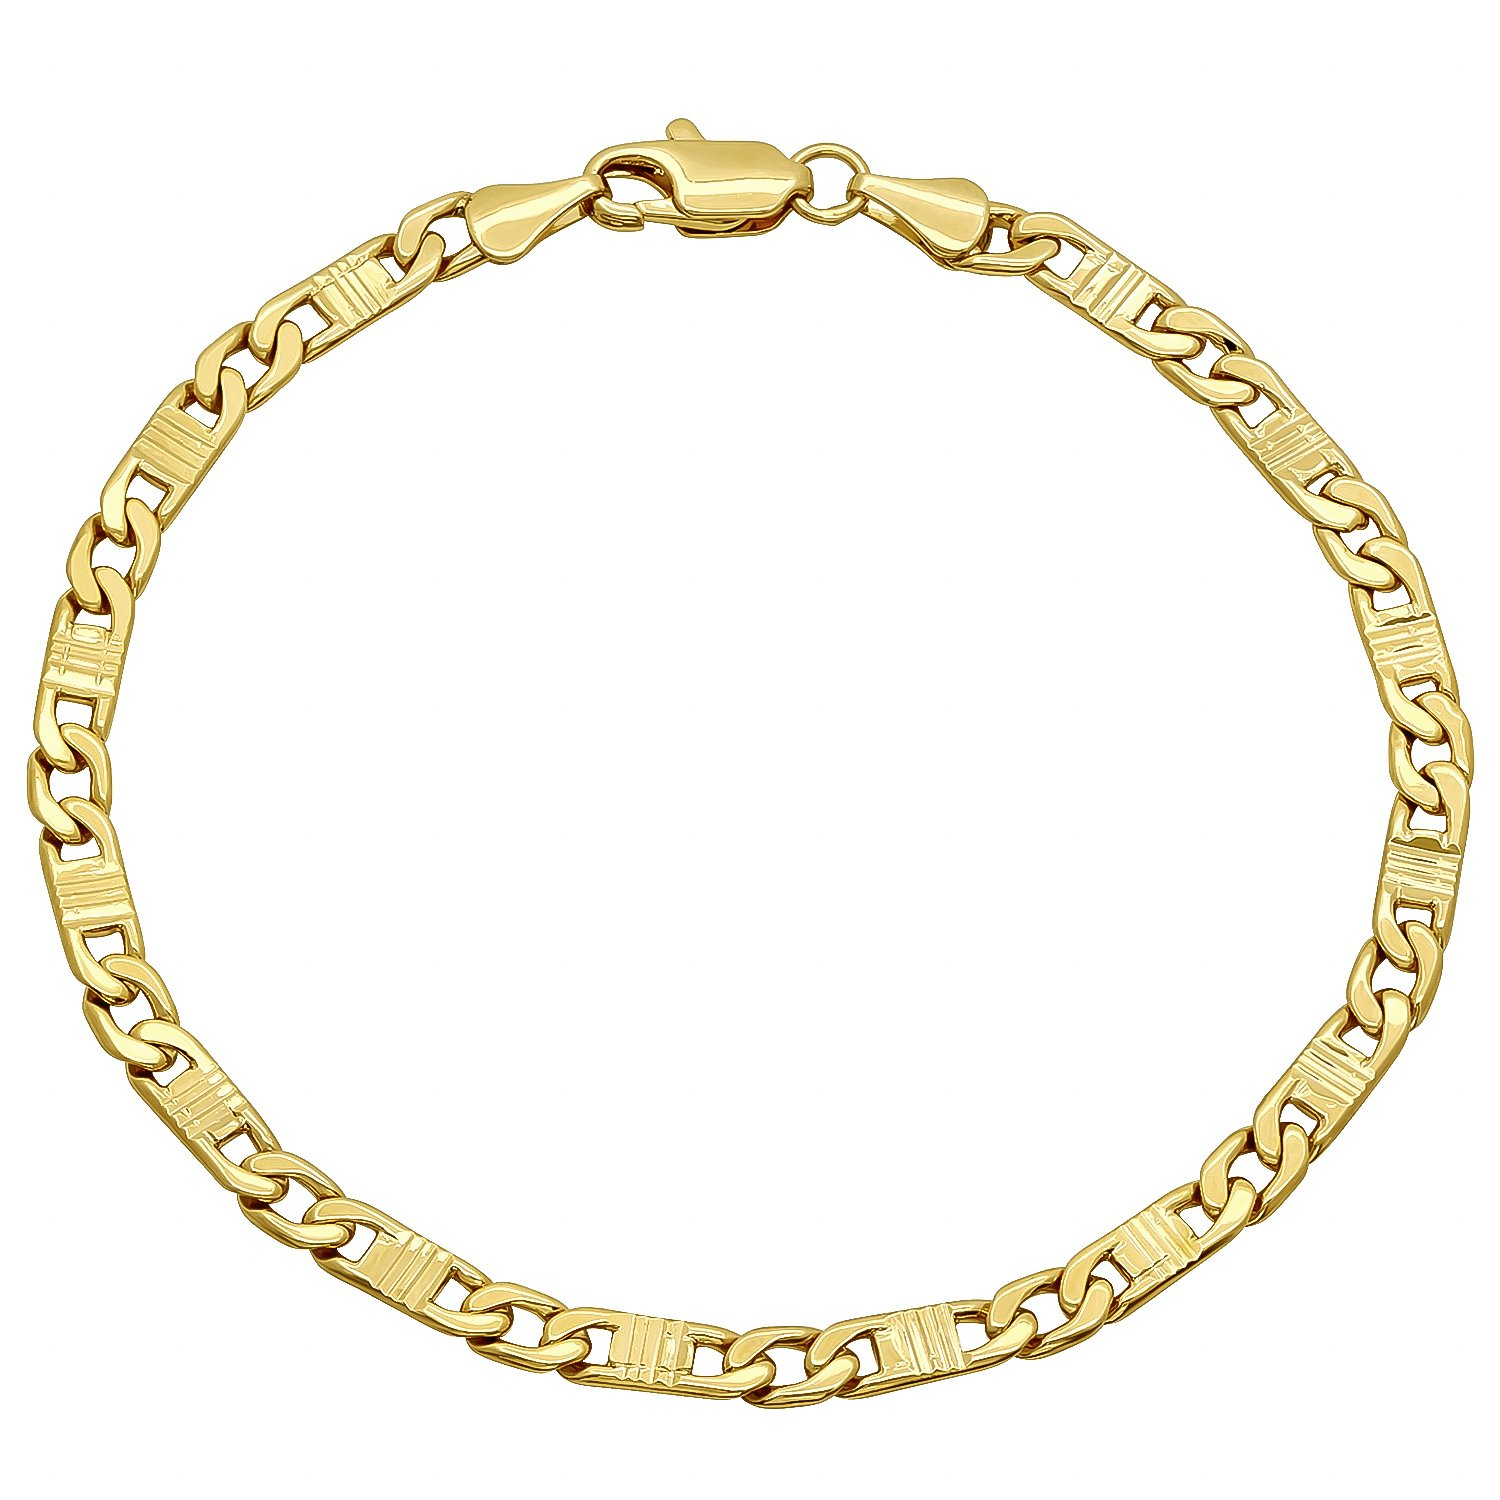 The Bling Factory 4mm 14k Yellow Gold Plated Groove Textured Flat Mariner Link Chain, 7'' + Microfiber Jewelry Polishing Cloth